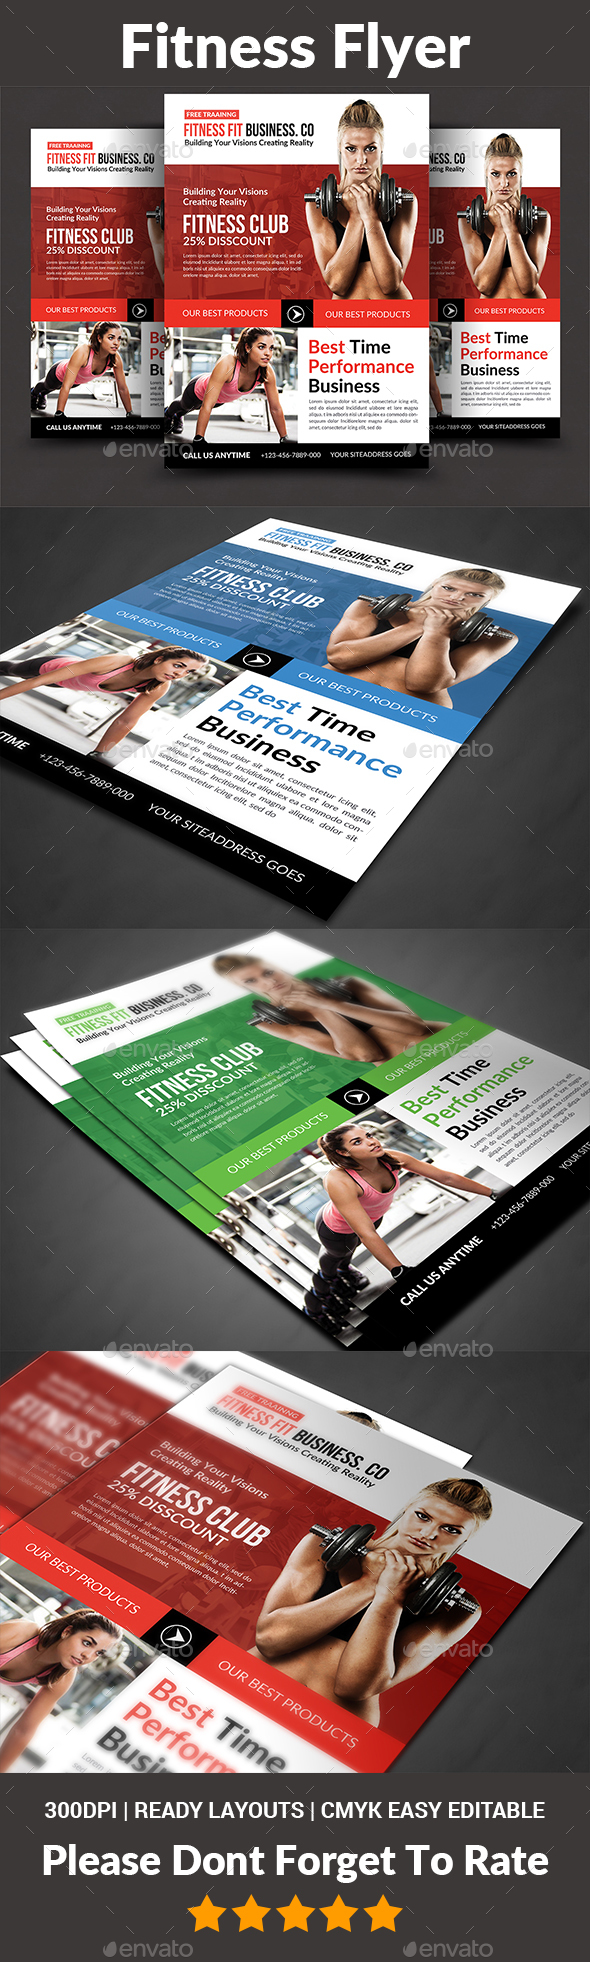 Fitness Flyer - Corporate Flyers